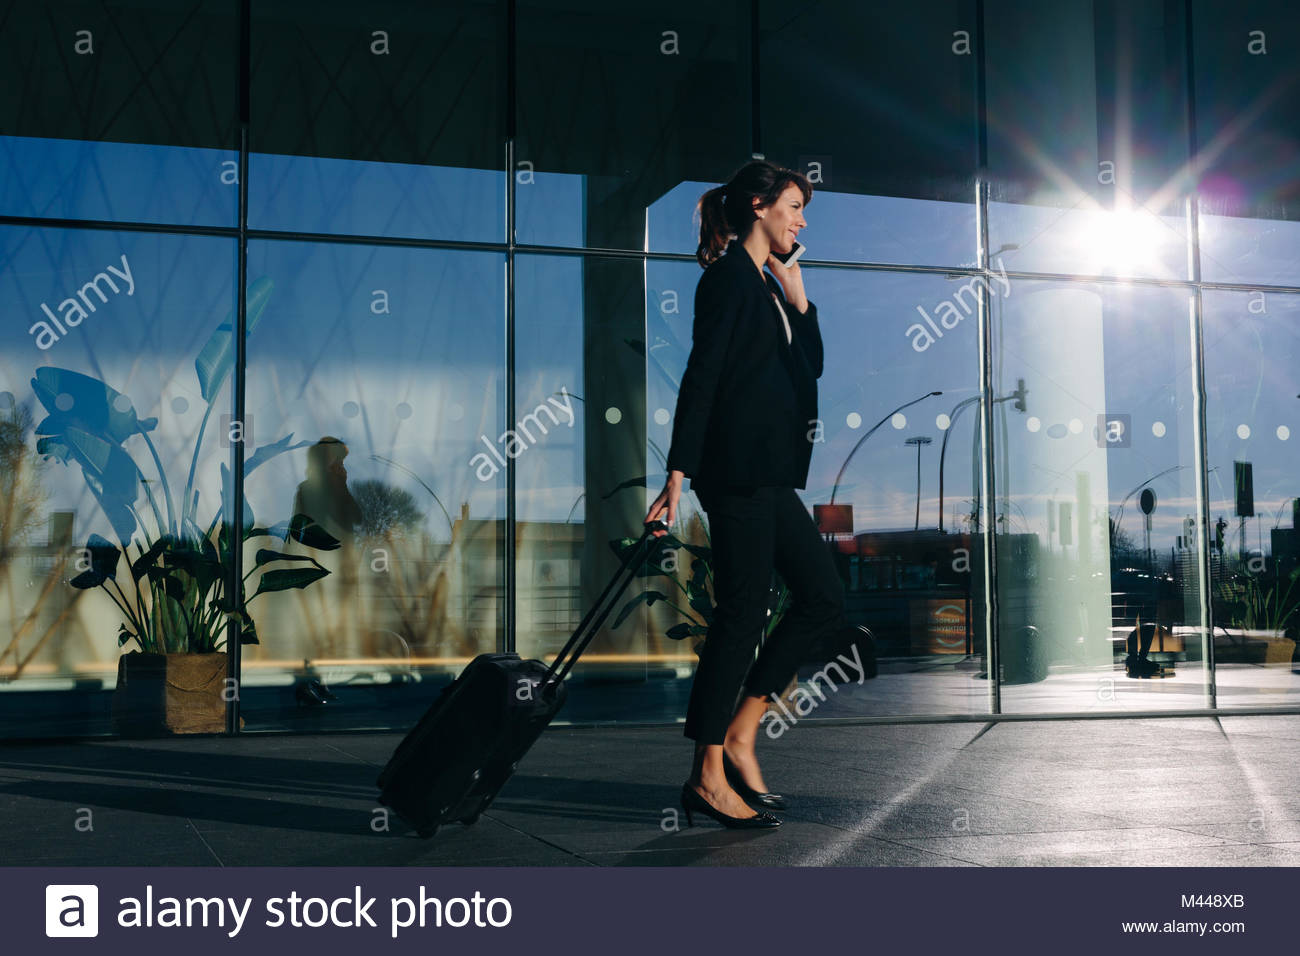 Businesswoman with wheeled luggage passing glass building, Malpensa, Milan - Stock Image